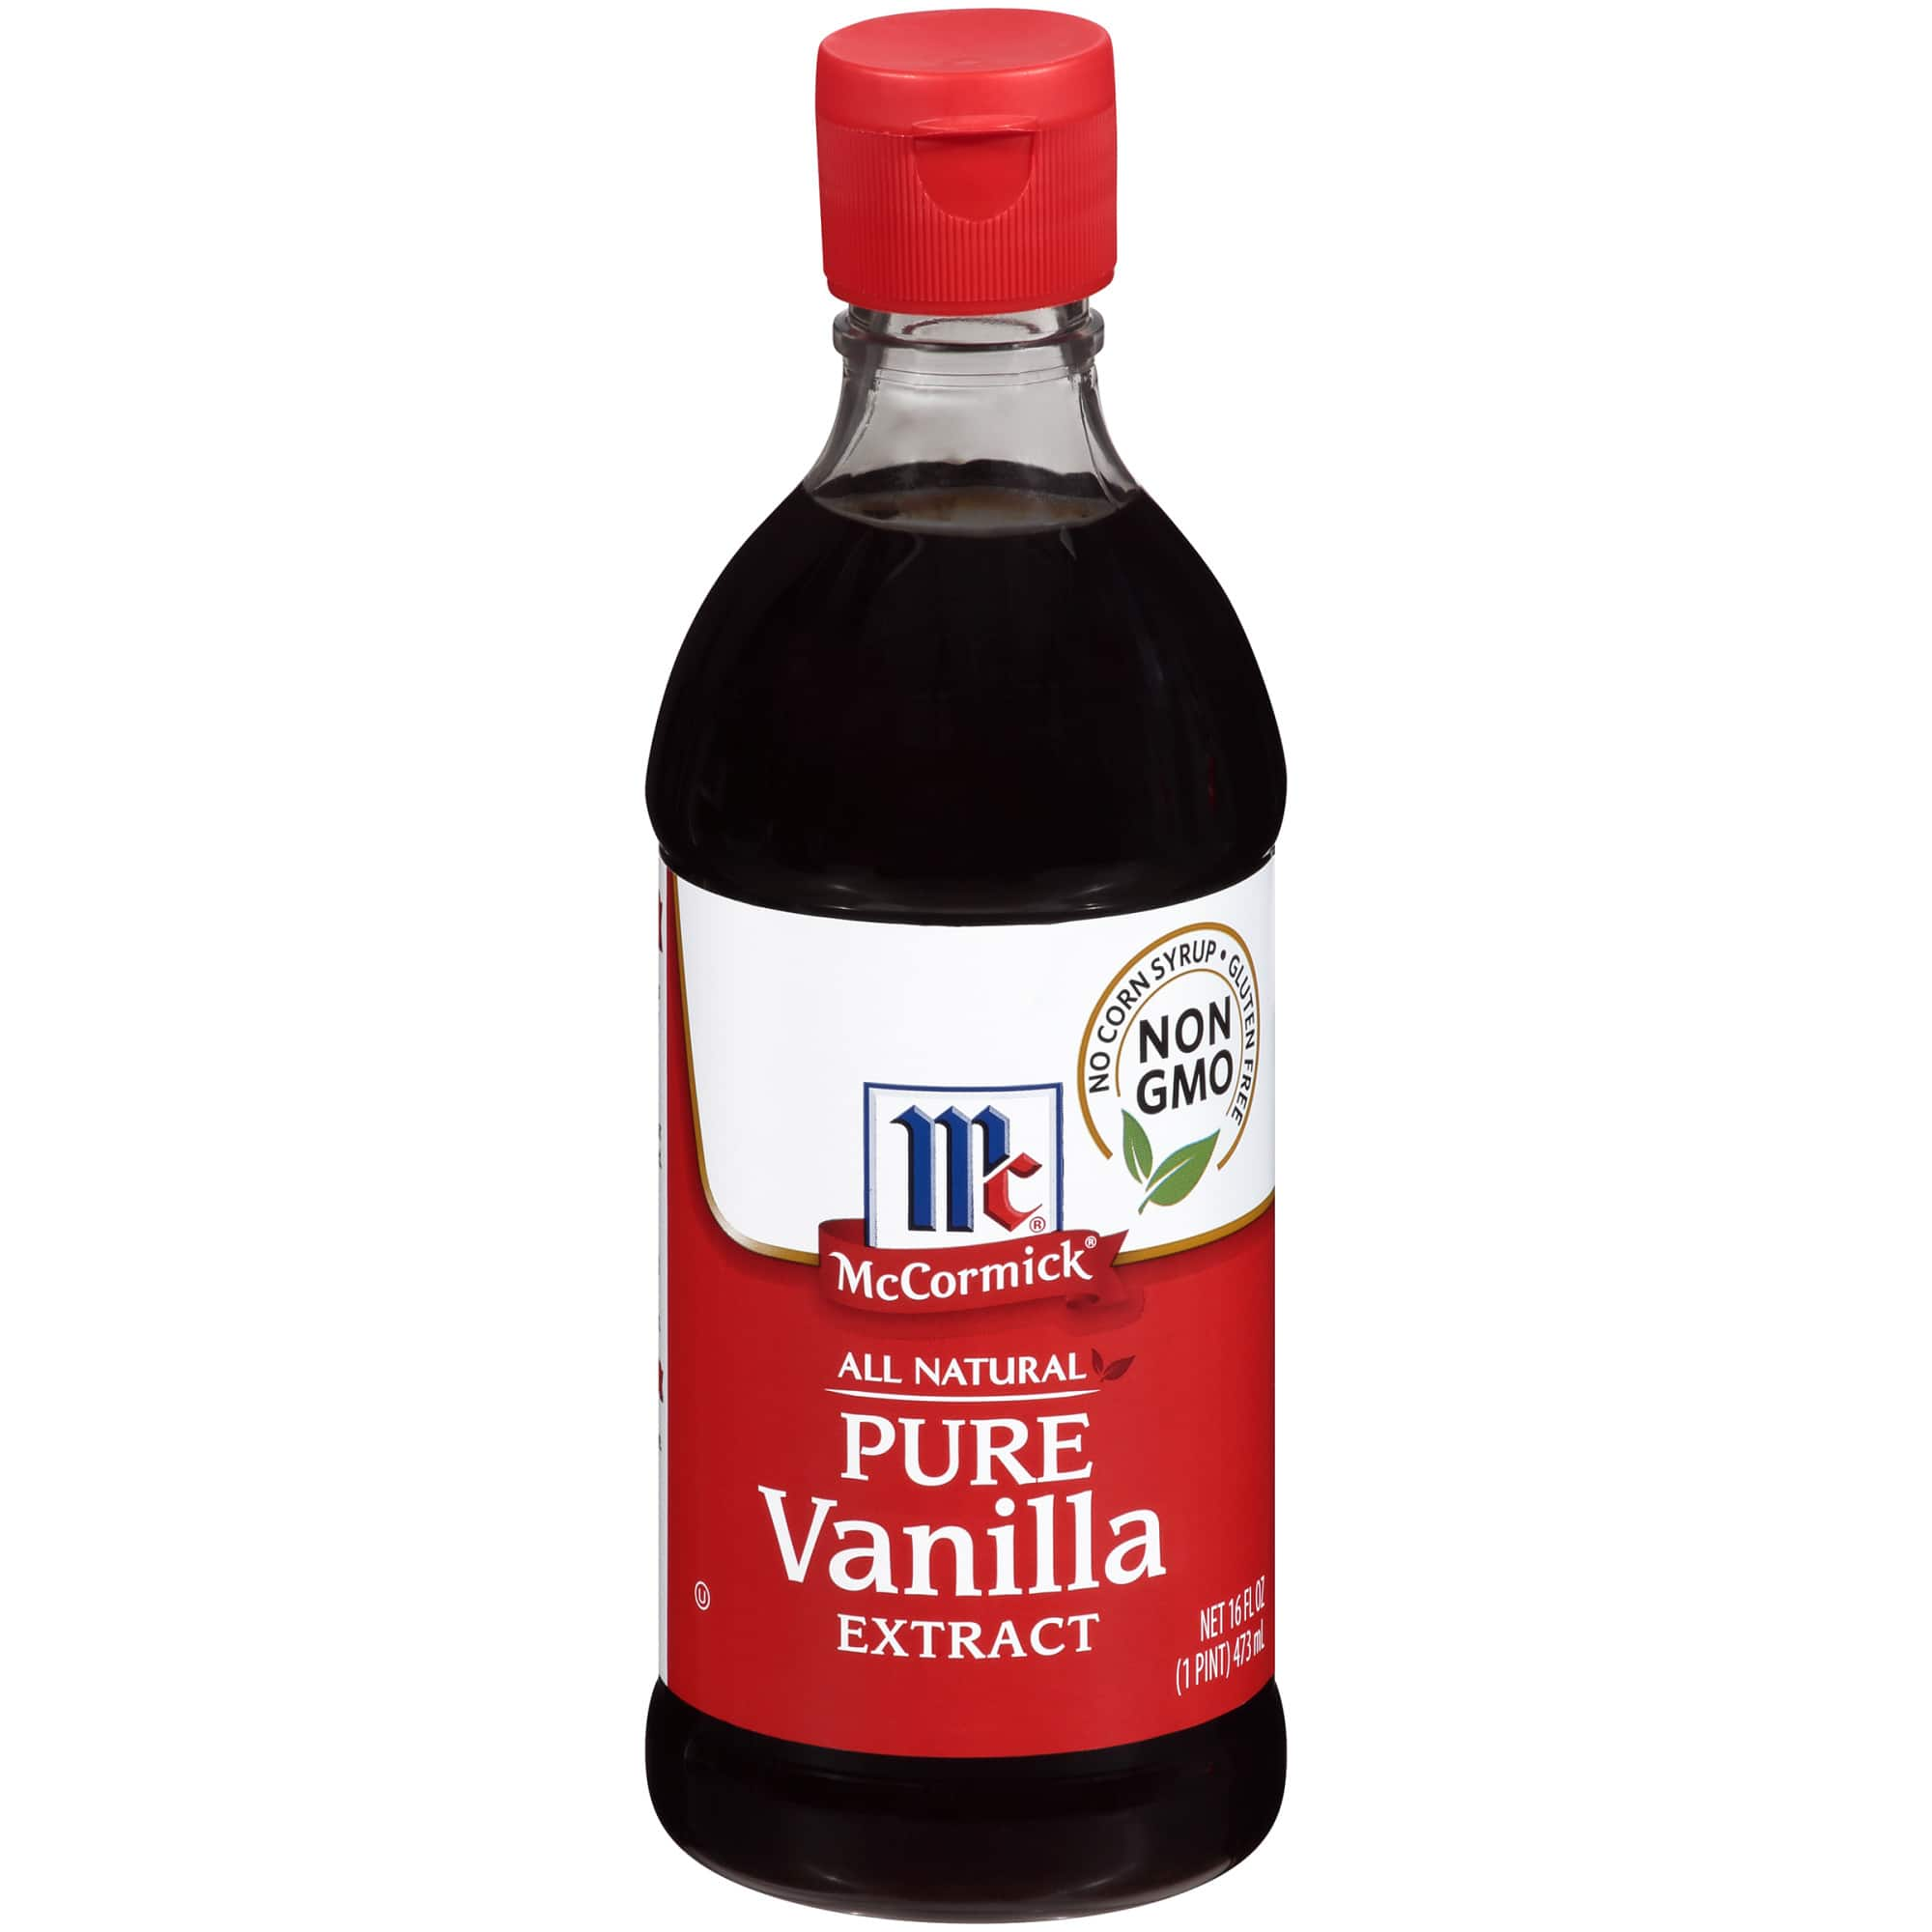 McCormick Pure Vanilla Extract 16 oz. Bottle as low as $20.92 @ Amazon after 15% Subscribe & Save Discount